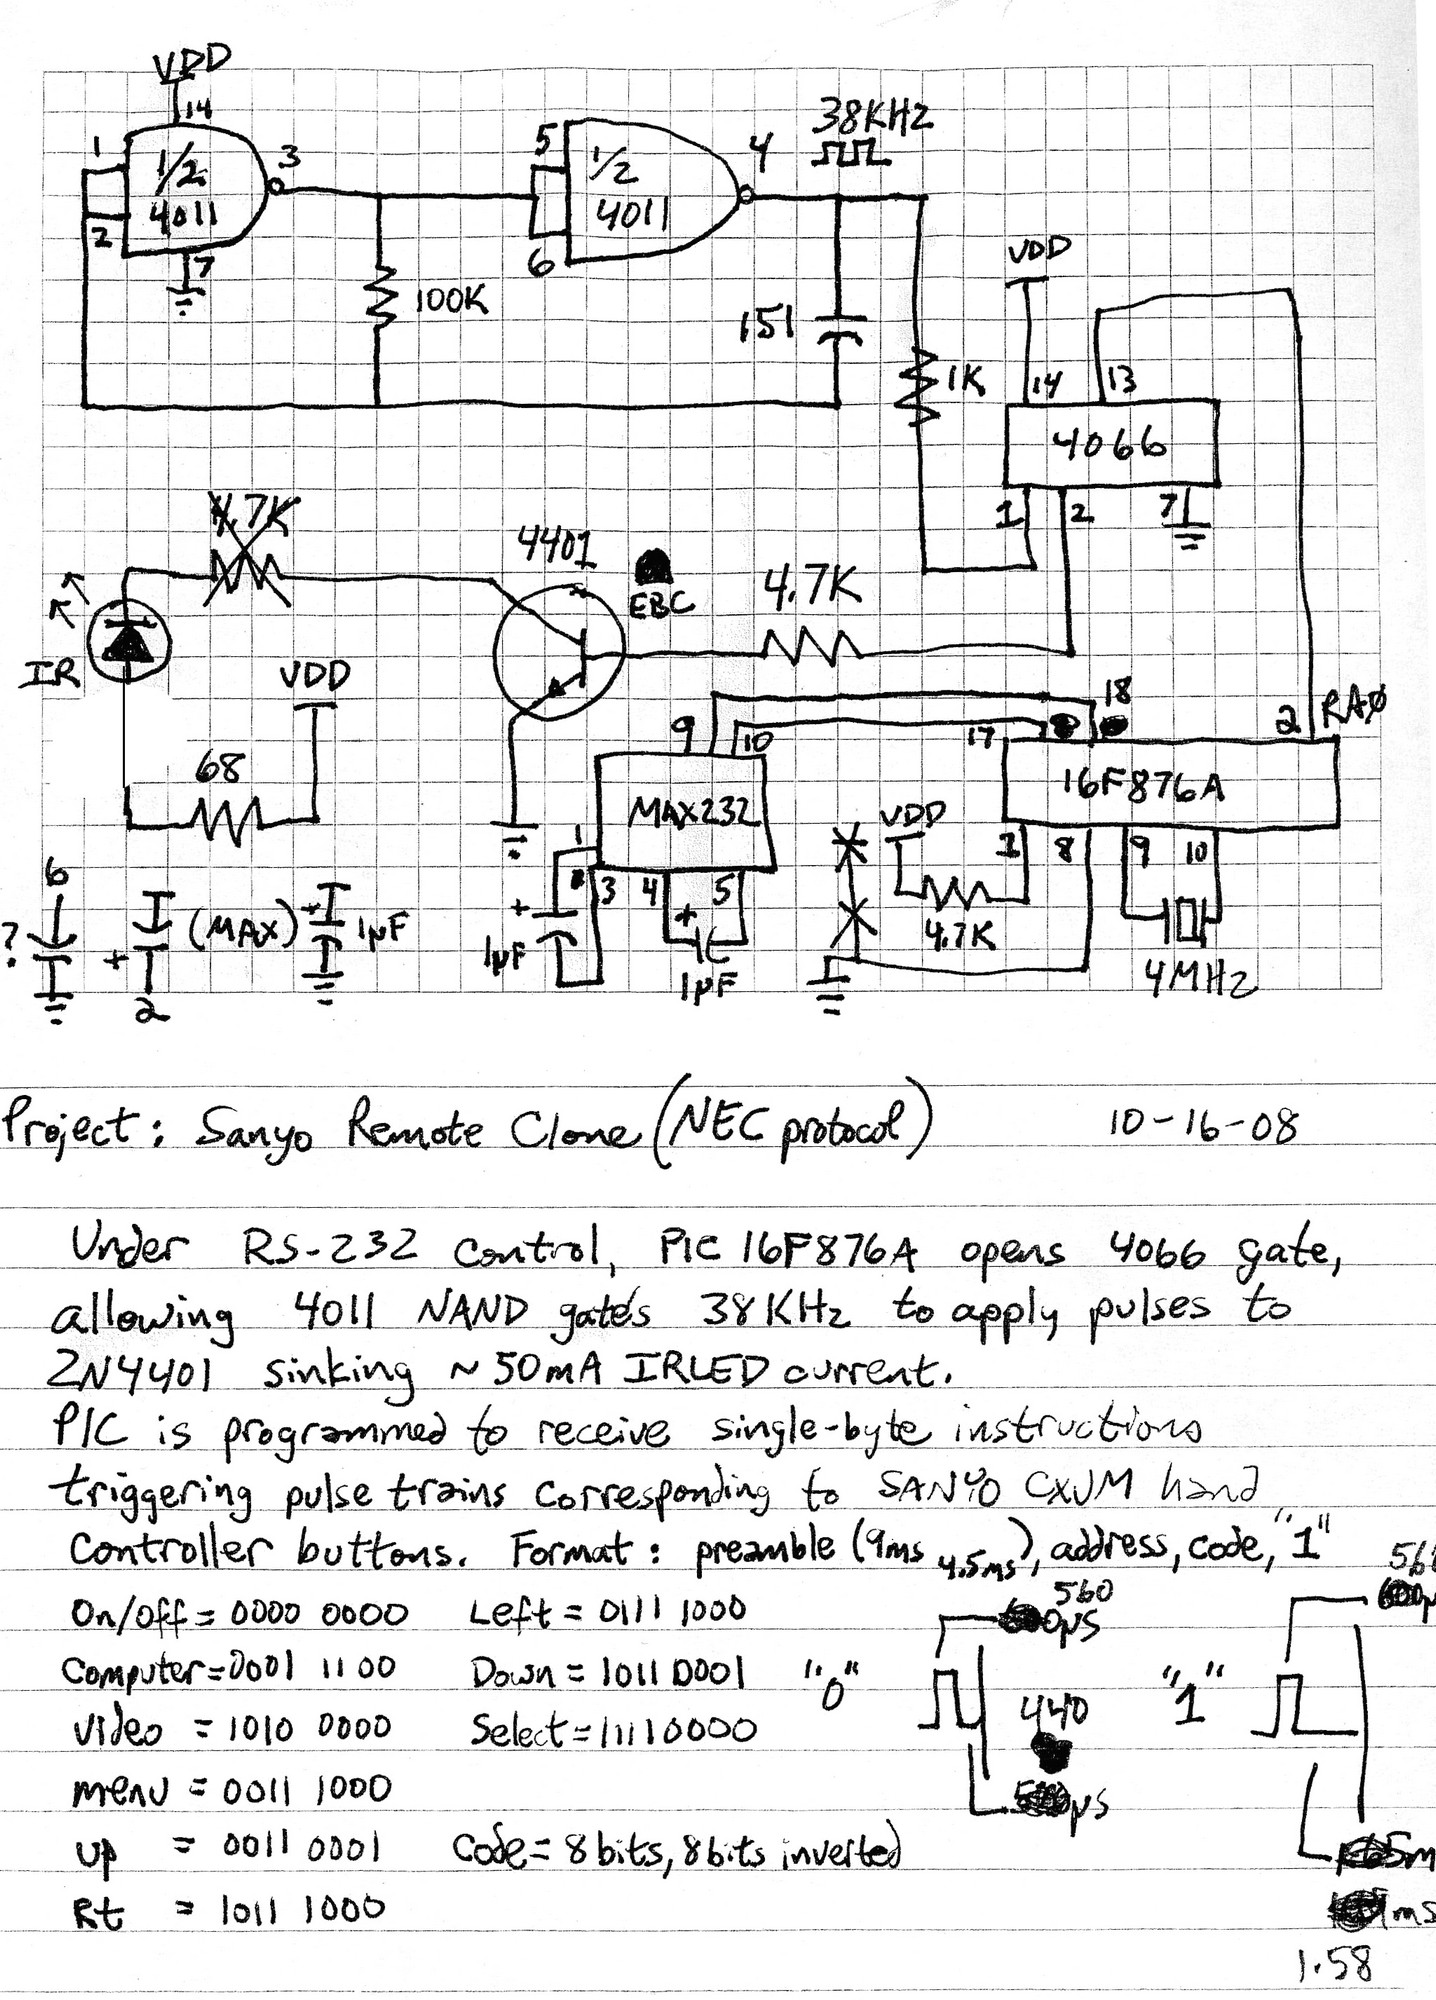 Remote Control Circuit Page 5 Automation Circuits Controlled Appliance Switch Hampton Bay Air Conditioner Ir Reverse Engineer